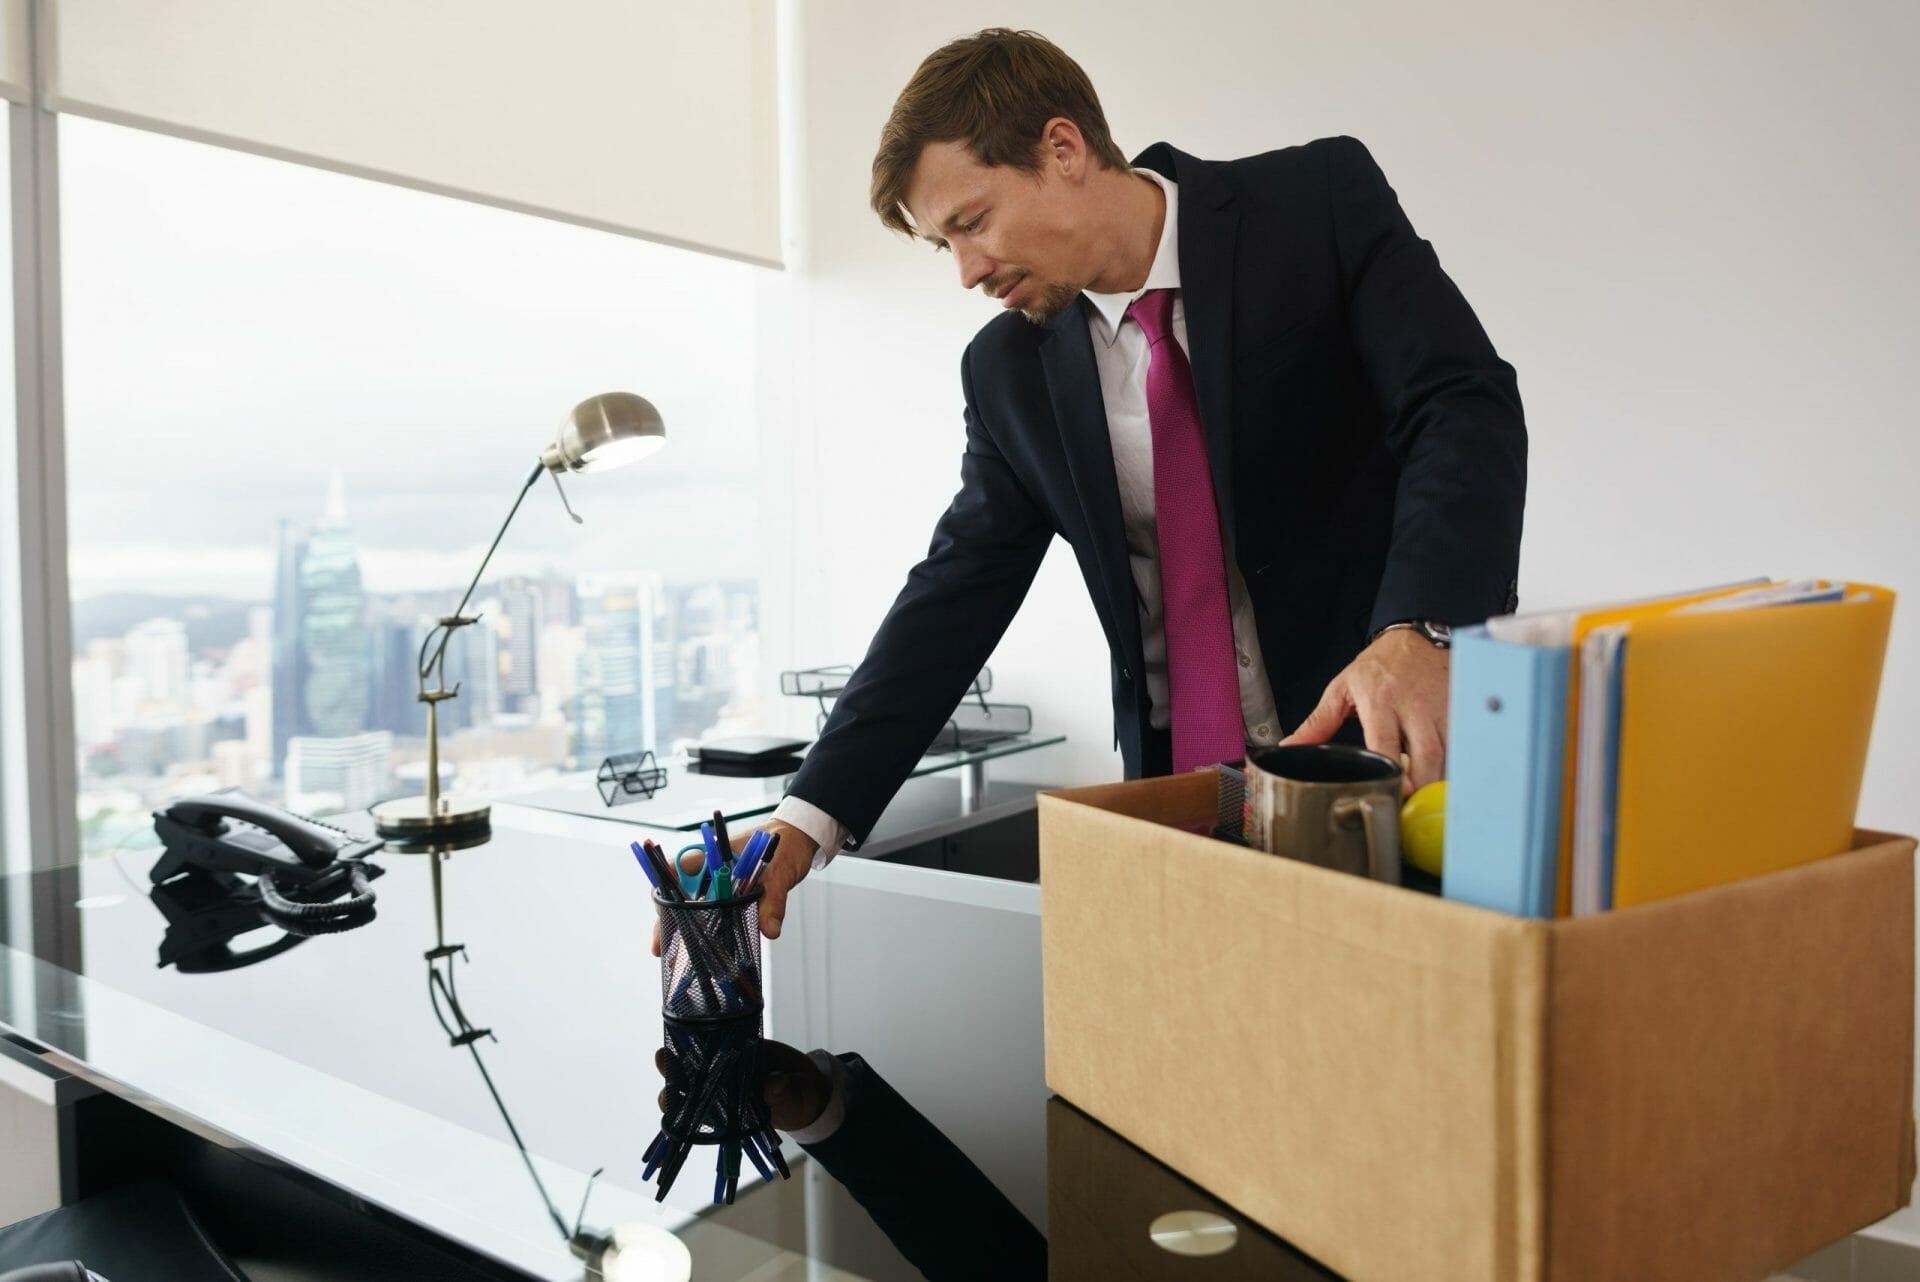 man packing up his office